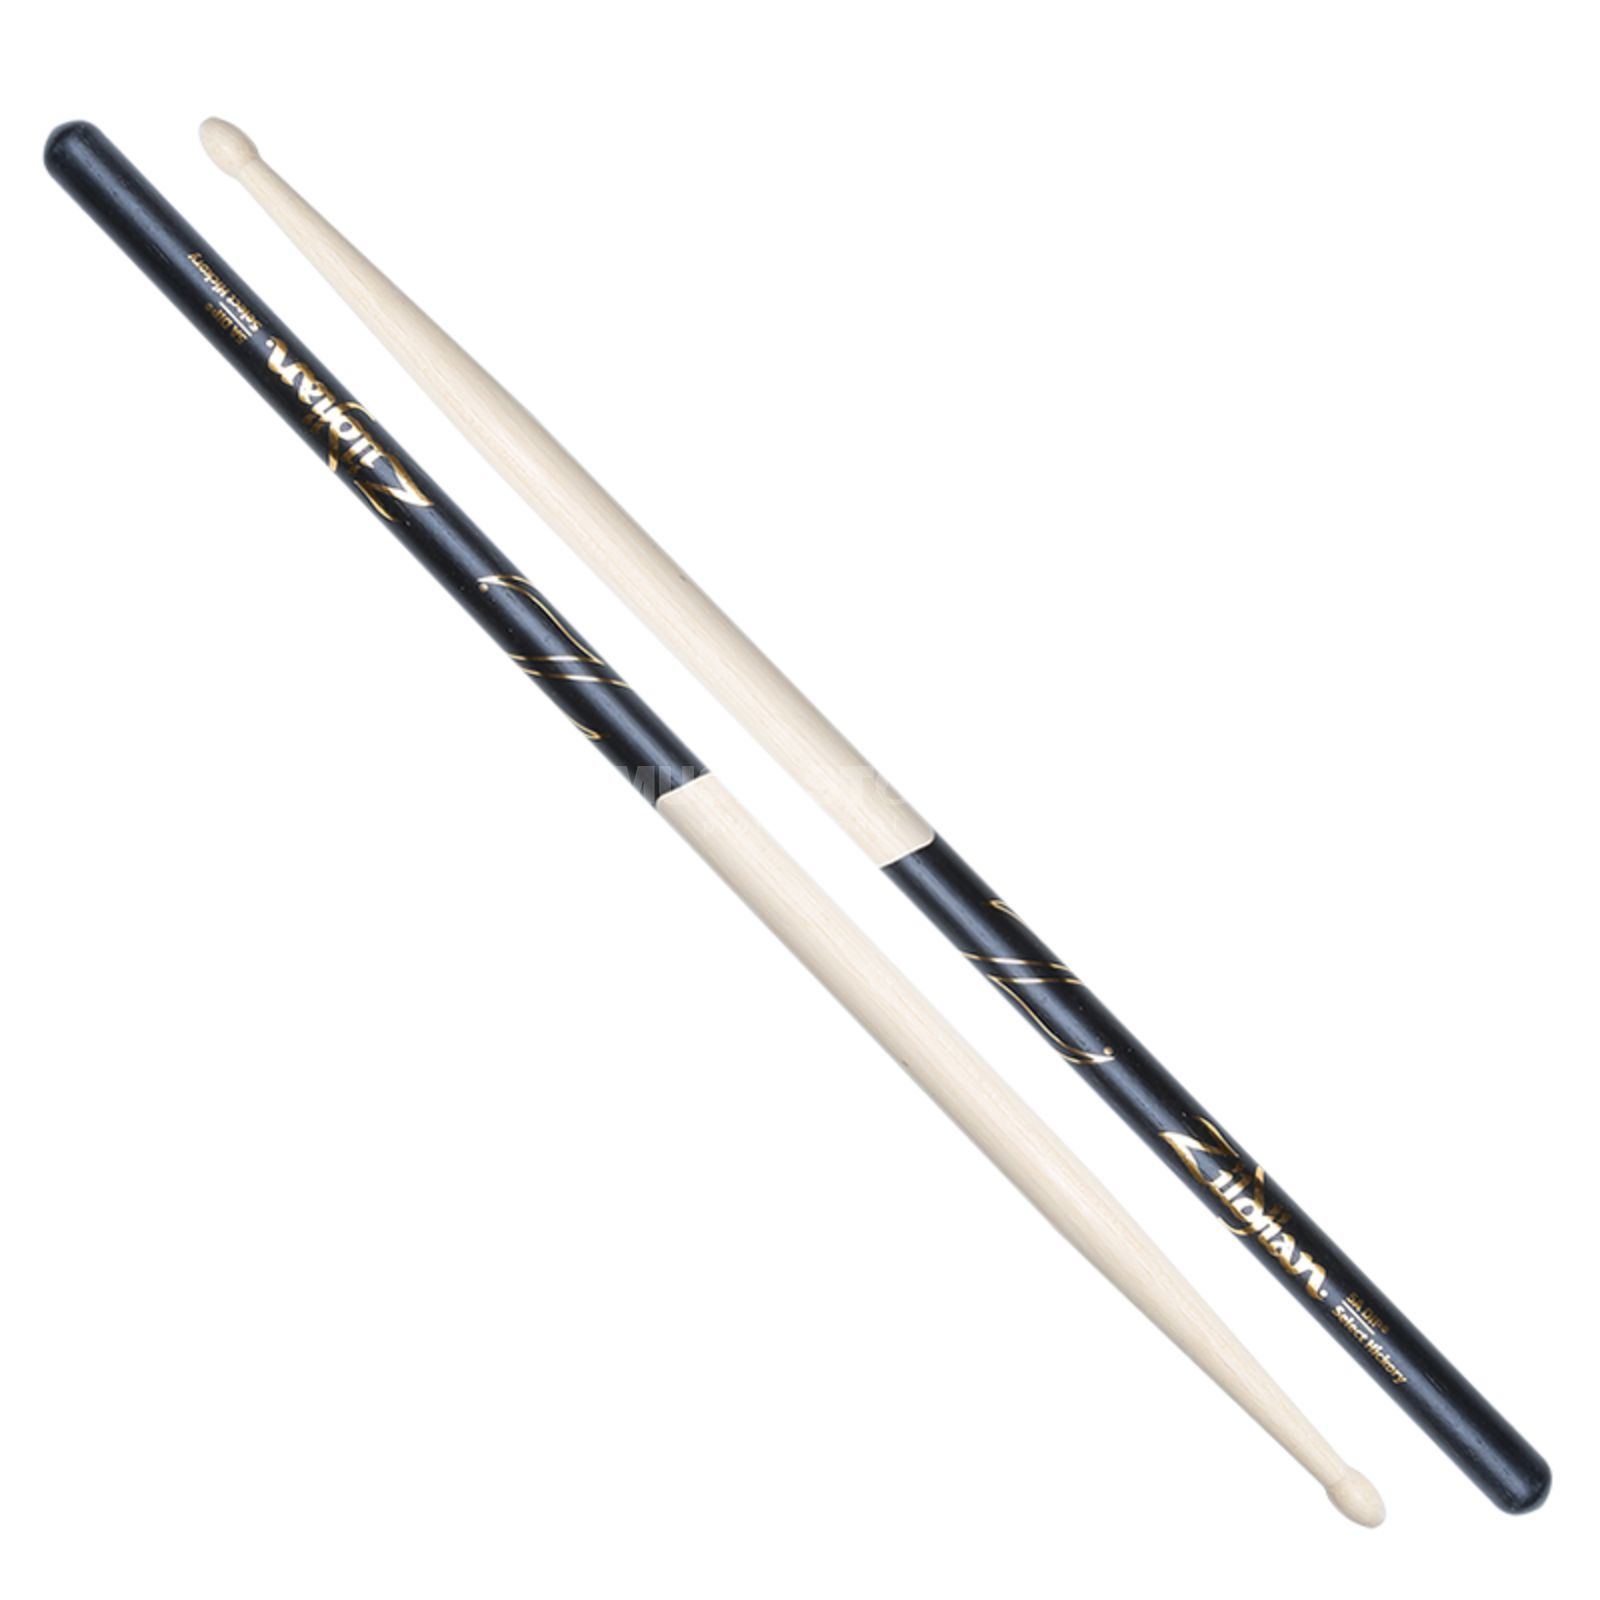 Zildjian 5A Hickory Sticks, Black-DIP Natural Finish, Wood Tip Produktbild